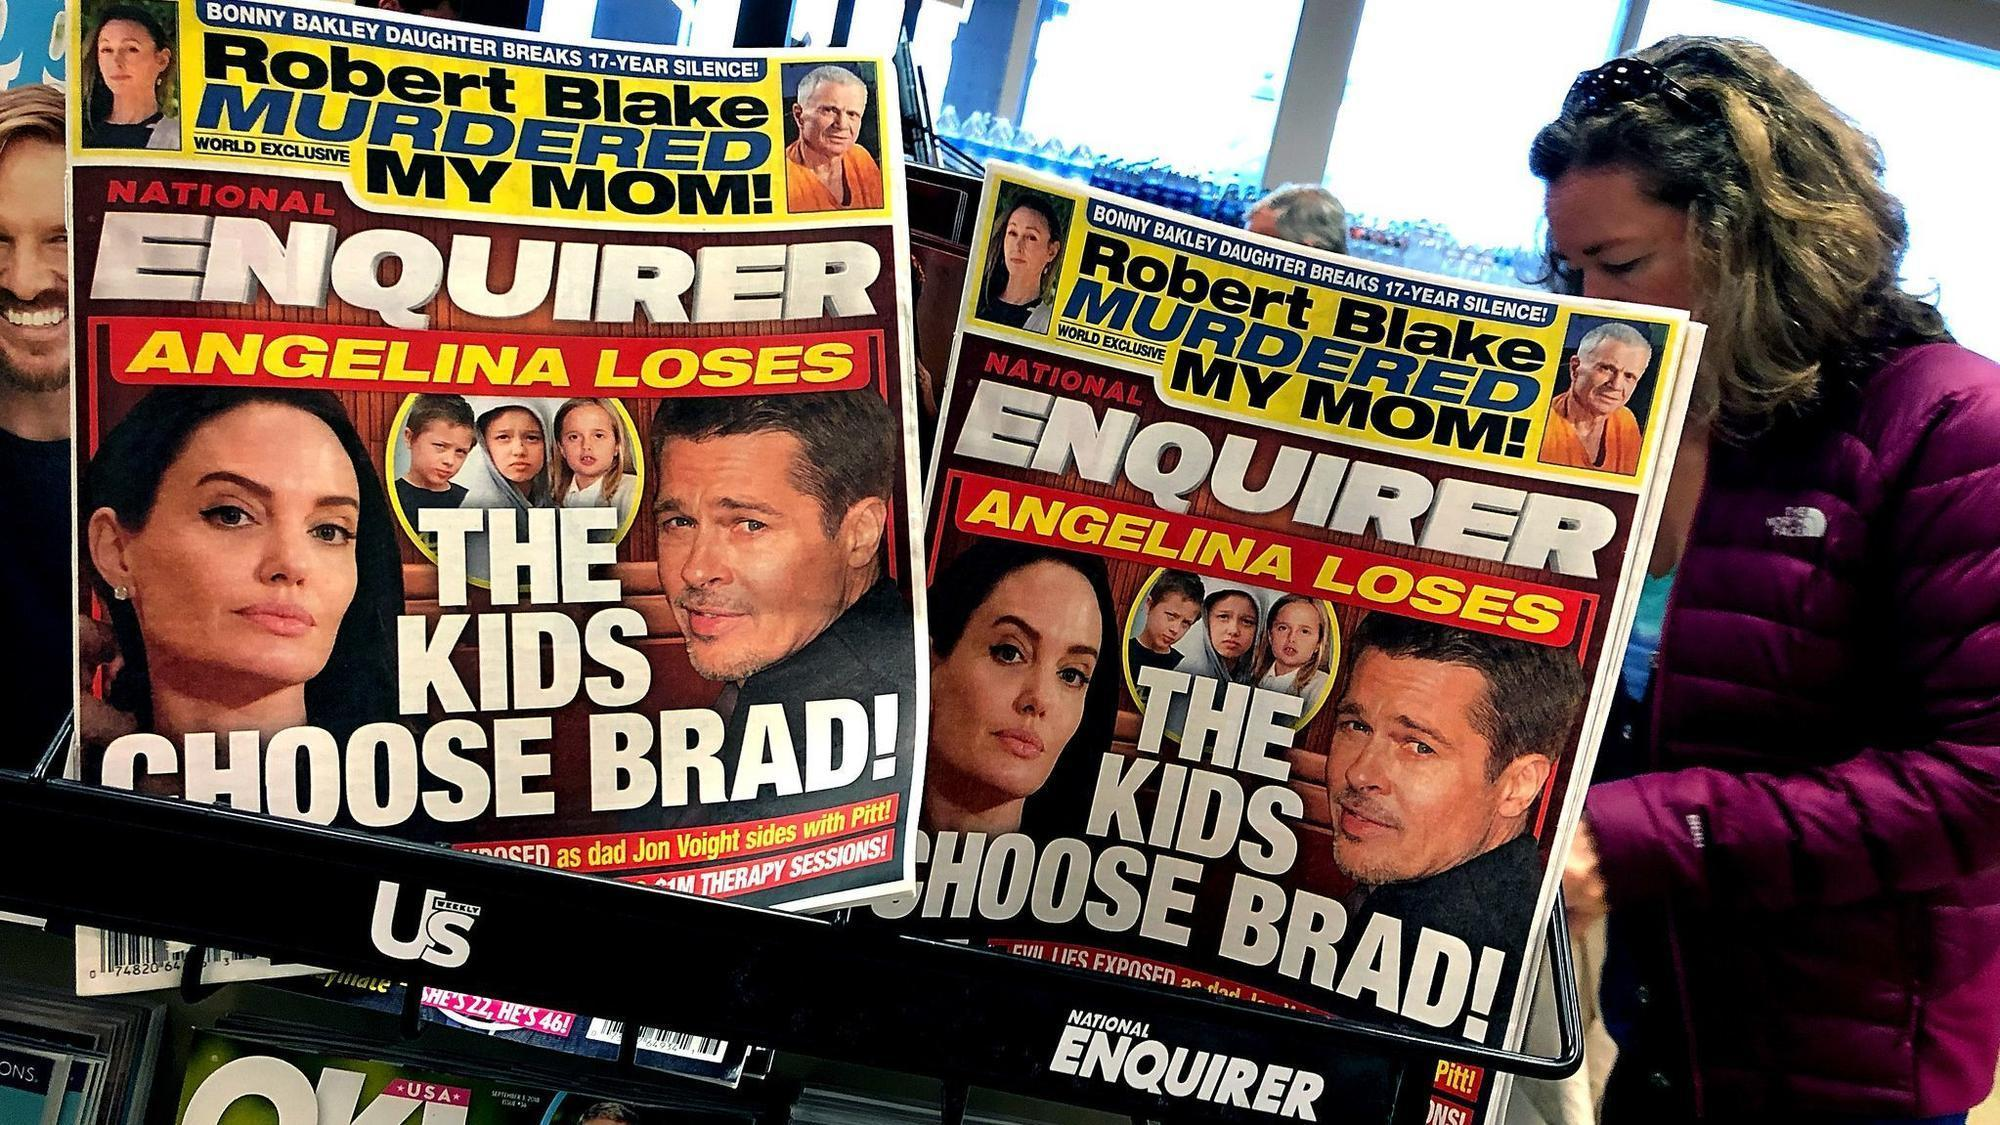 CalPERS sunk millions into National Enquirer? That's a financial crime, not a political one